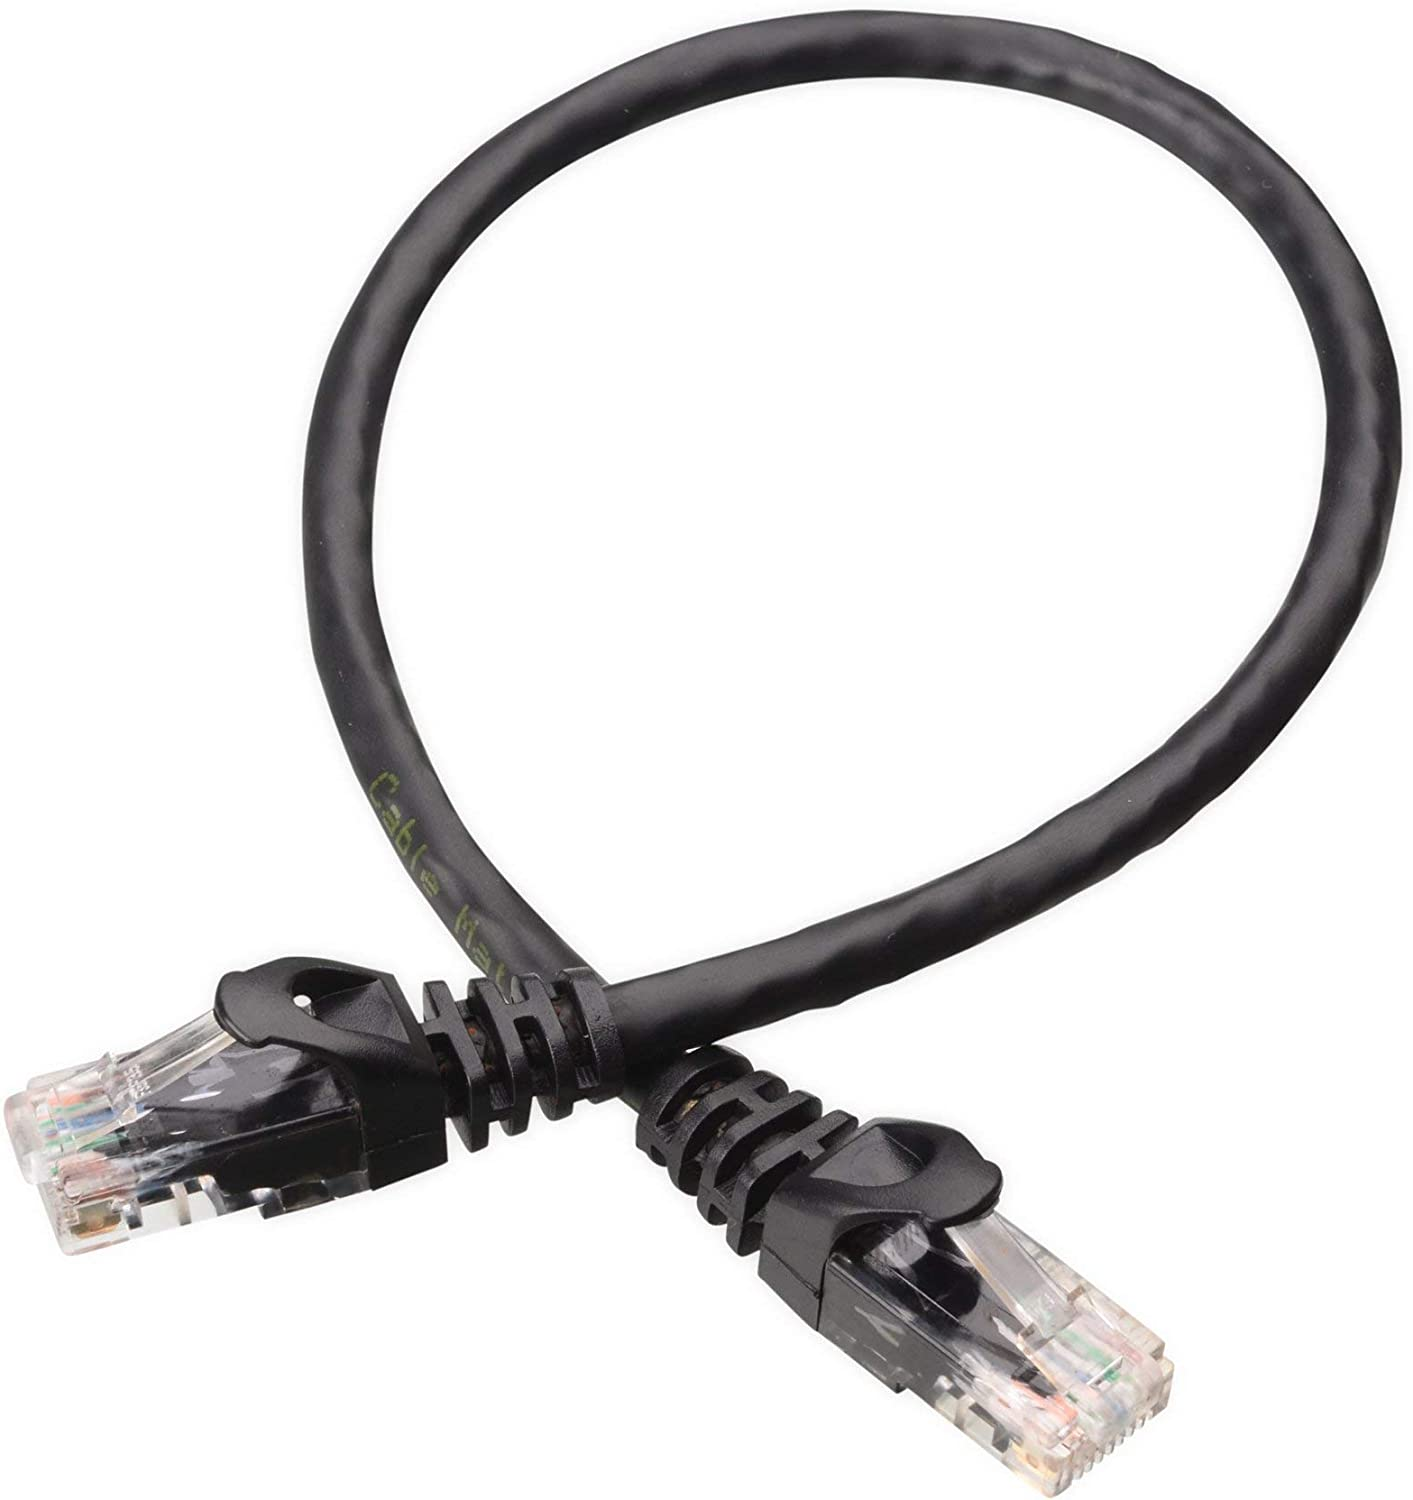 Cable Matters 10-Pack Snagless Cat6 Ethernet Cable Renewed Cat6 Cable, Cat 6 Cable in Black 1 Foot